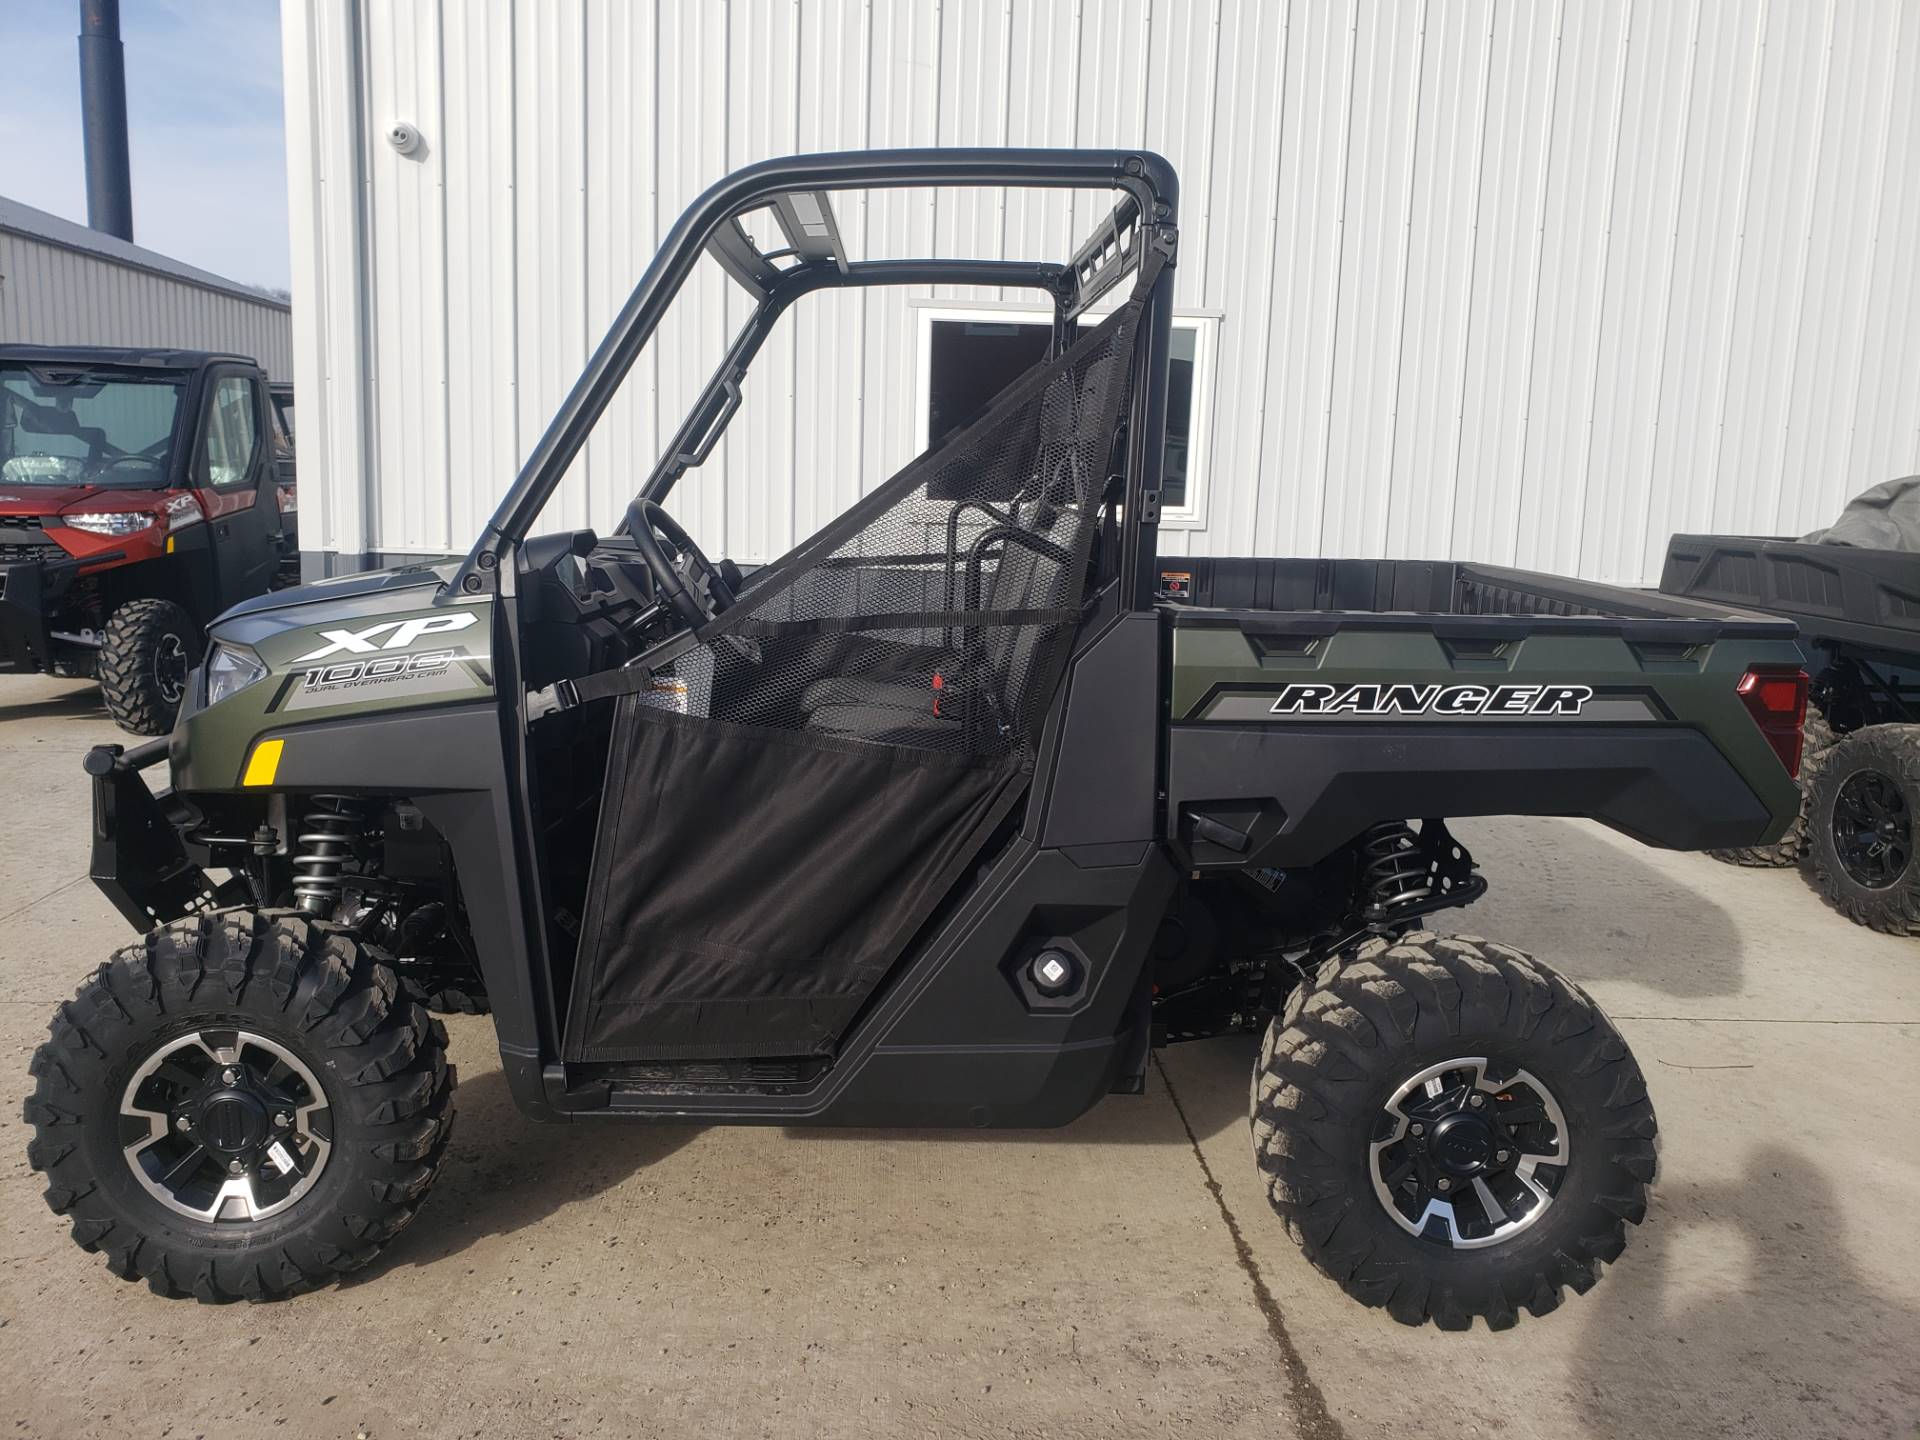 2020 Polaris Ranger XP 1000 Premium in Cambridge, Ohio - Photo 1